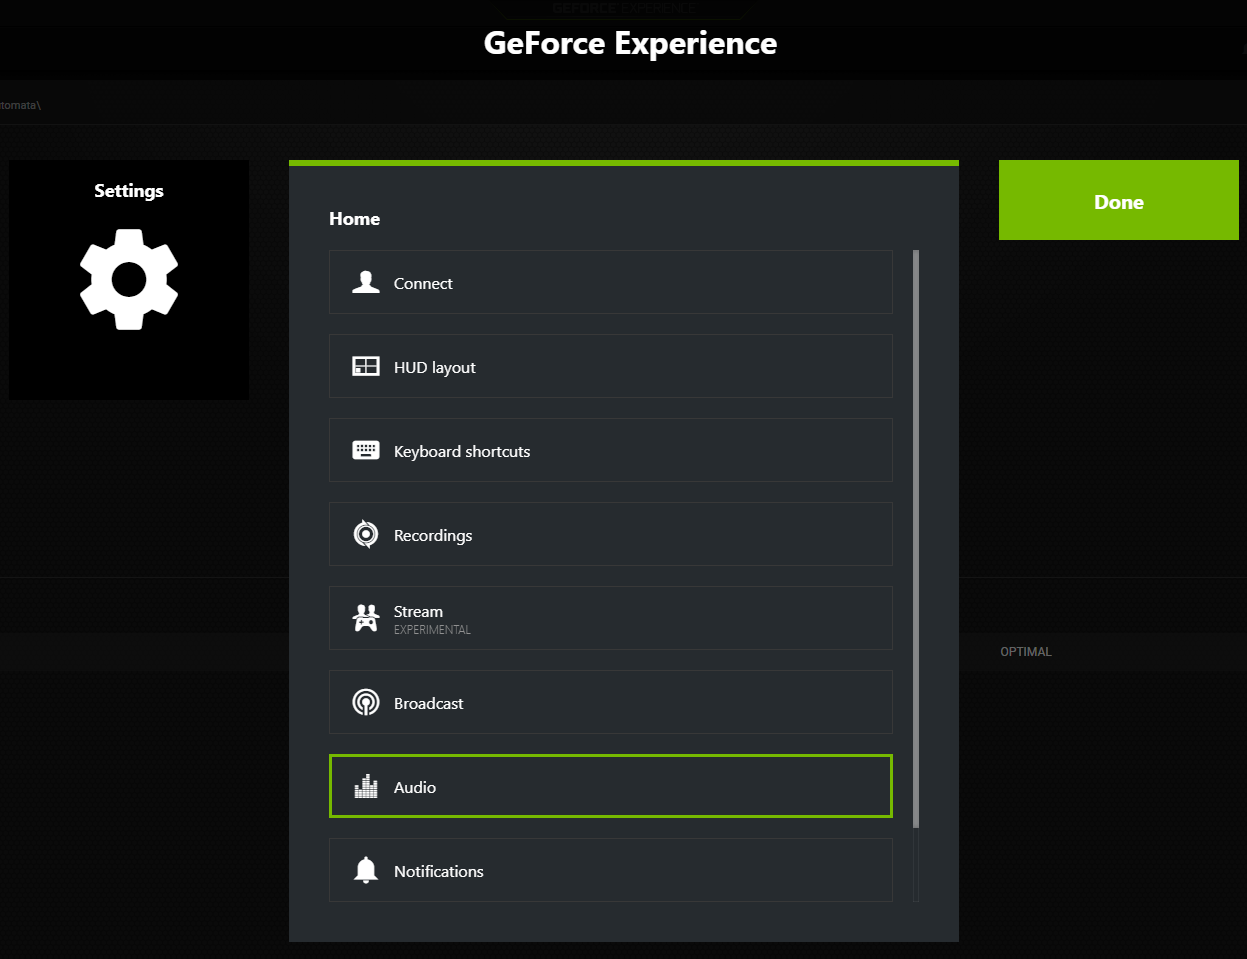 GeForce Experience 3 8 Beta Adds Multi-Track Audio and